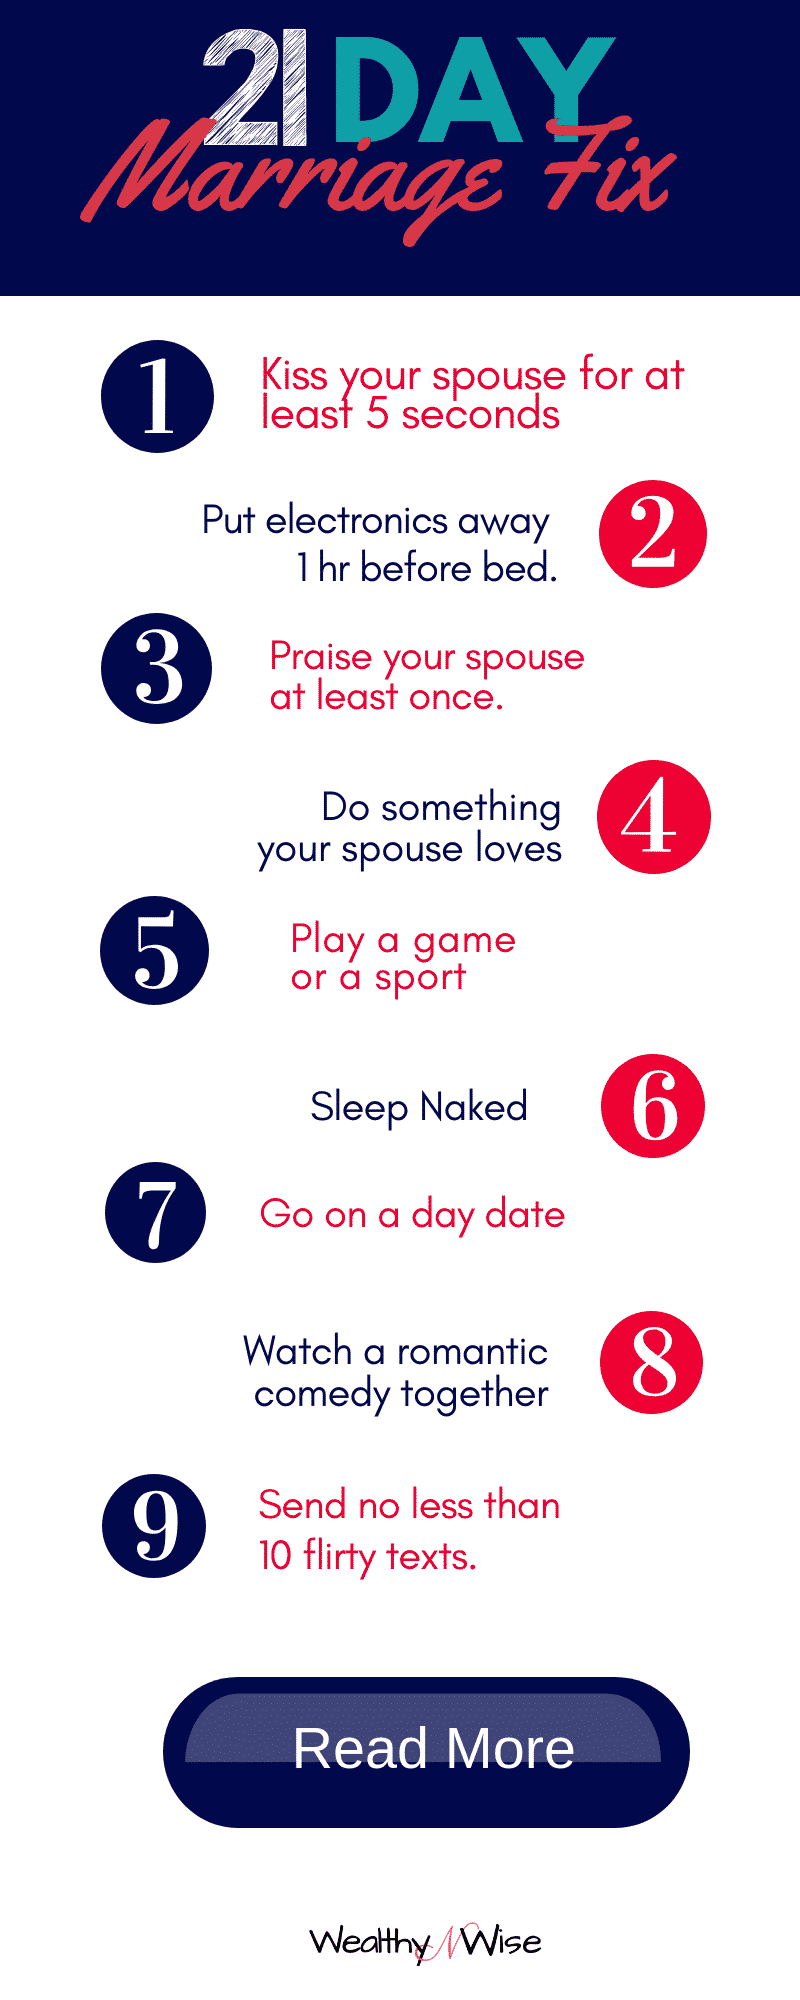 PIN THIS! Take the 21 day marriage fix challenge and find out how to fall back in love with your spouse!